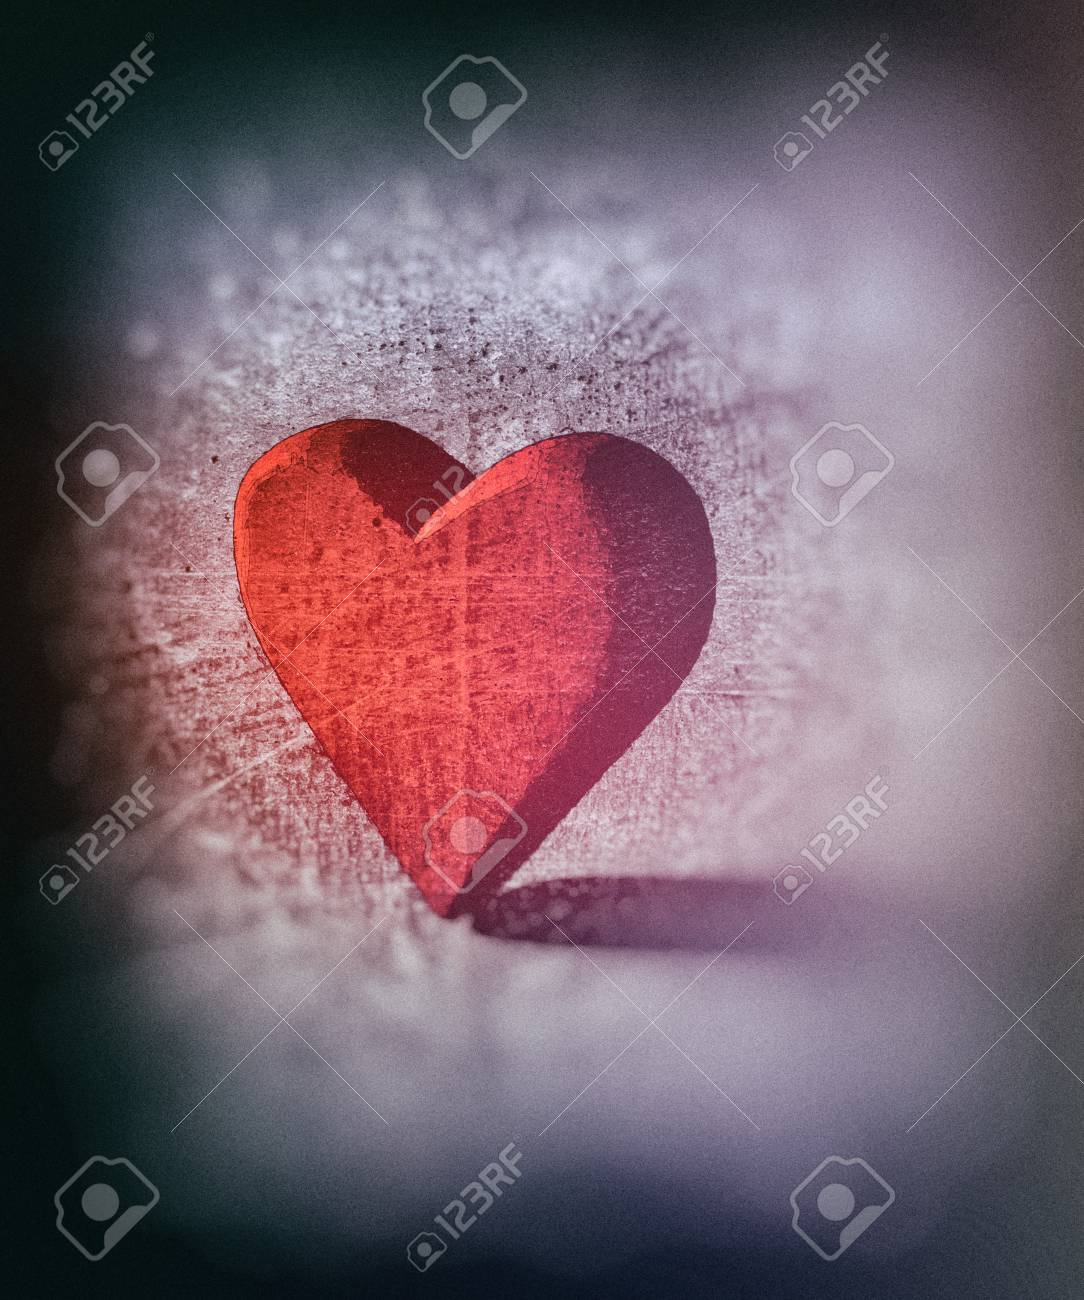 Grungy sketched red 3d heart shape lit by single with diffuse shadow colored pencil sketch style with dark blur vignette and scratches artistic heart